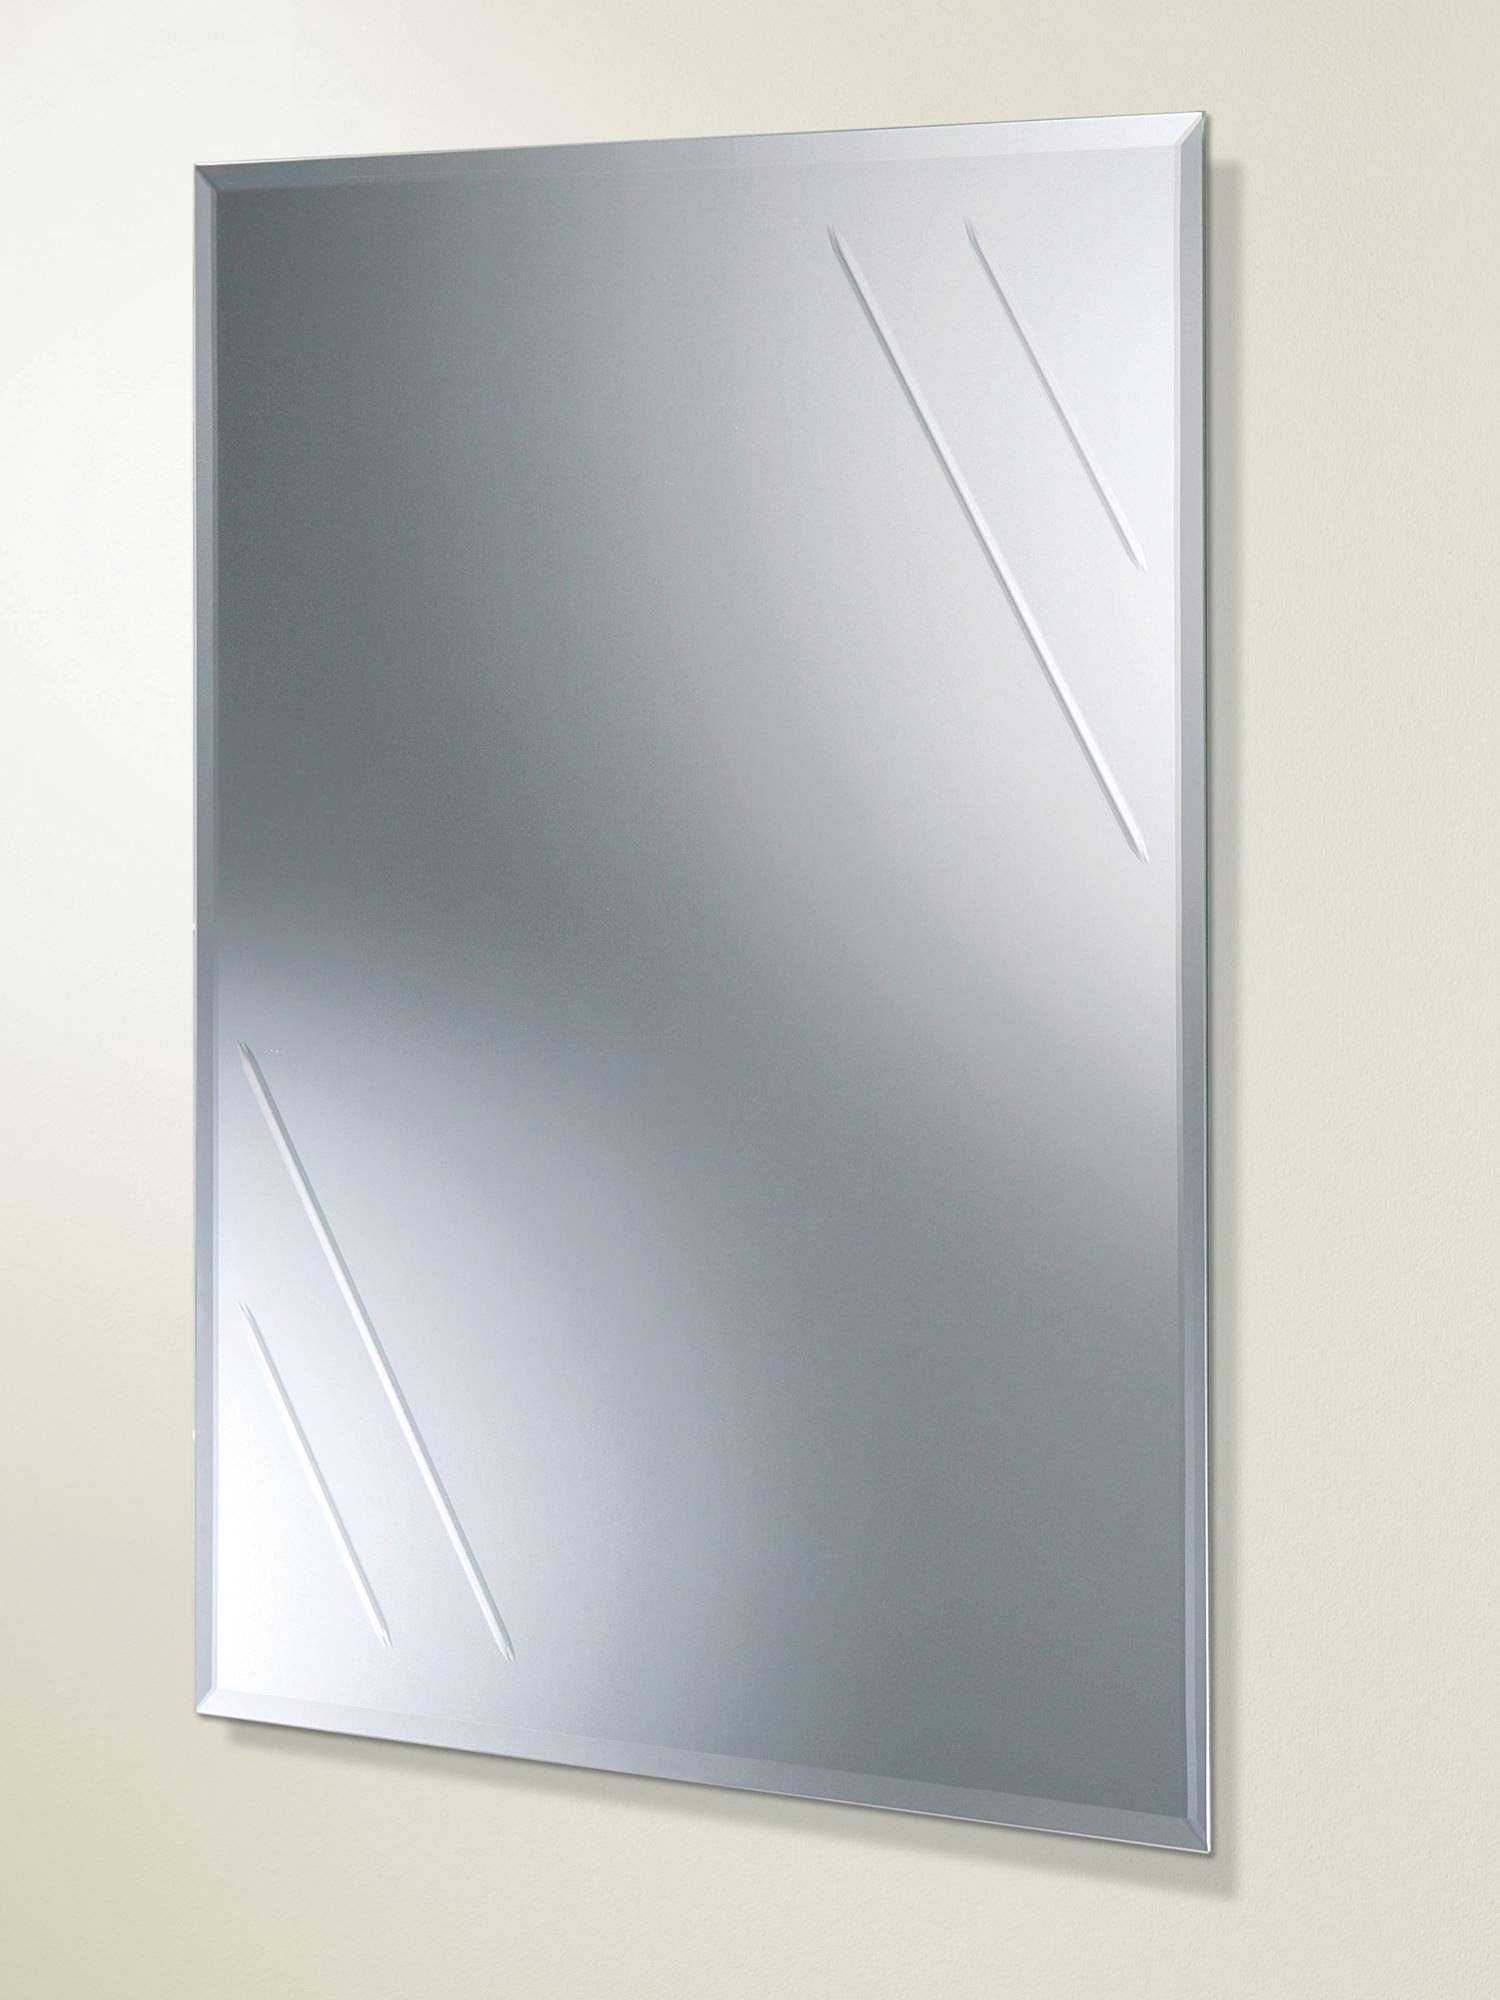 Hib Albina Rectangular Bevelled Edge Bathroom Mirror | 61164100 within Bevelled Bathroom Mirrors (Image 9 of 15)